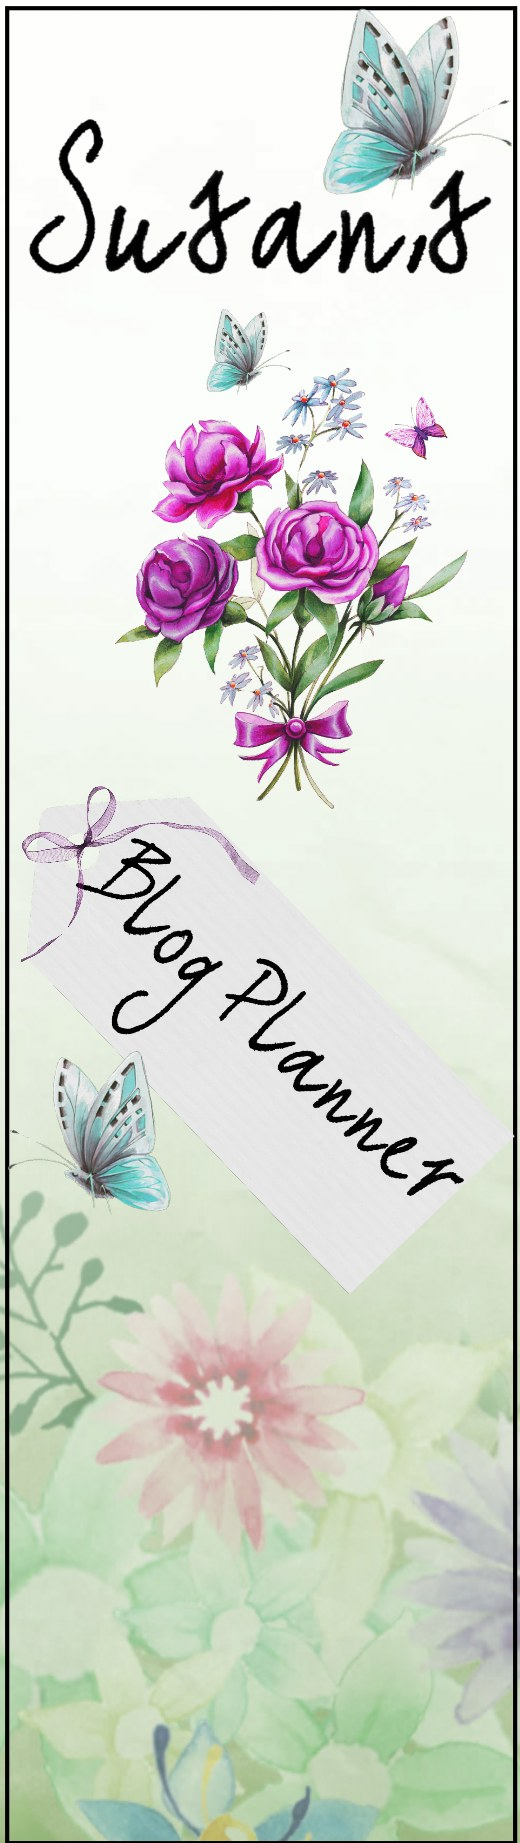 My beautiful digitally crafted blog planner spine label